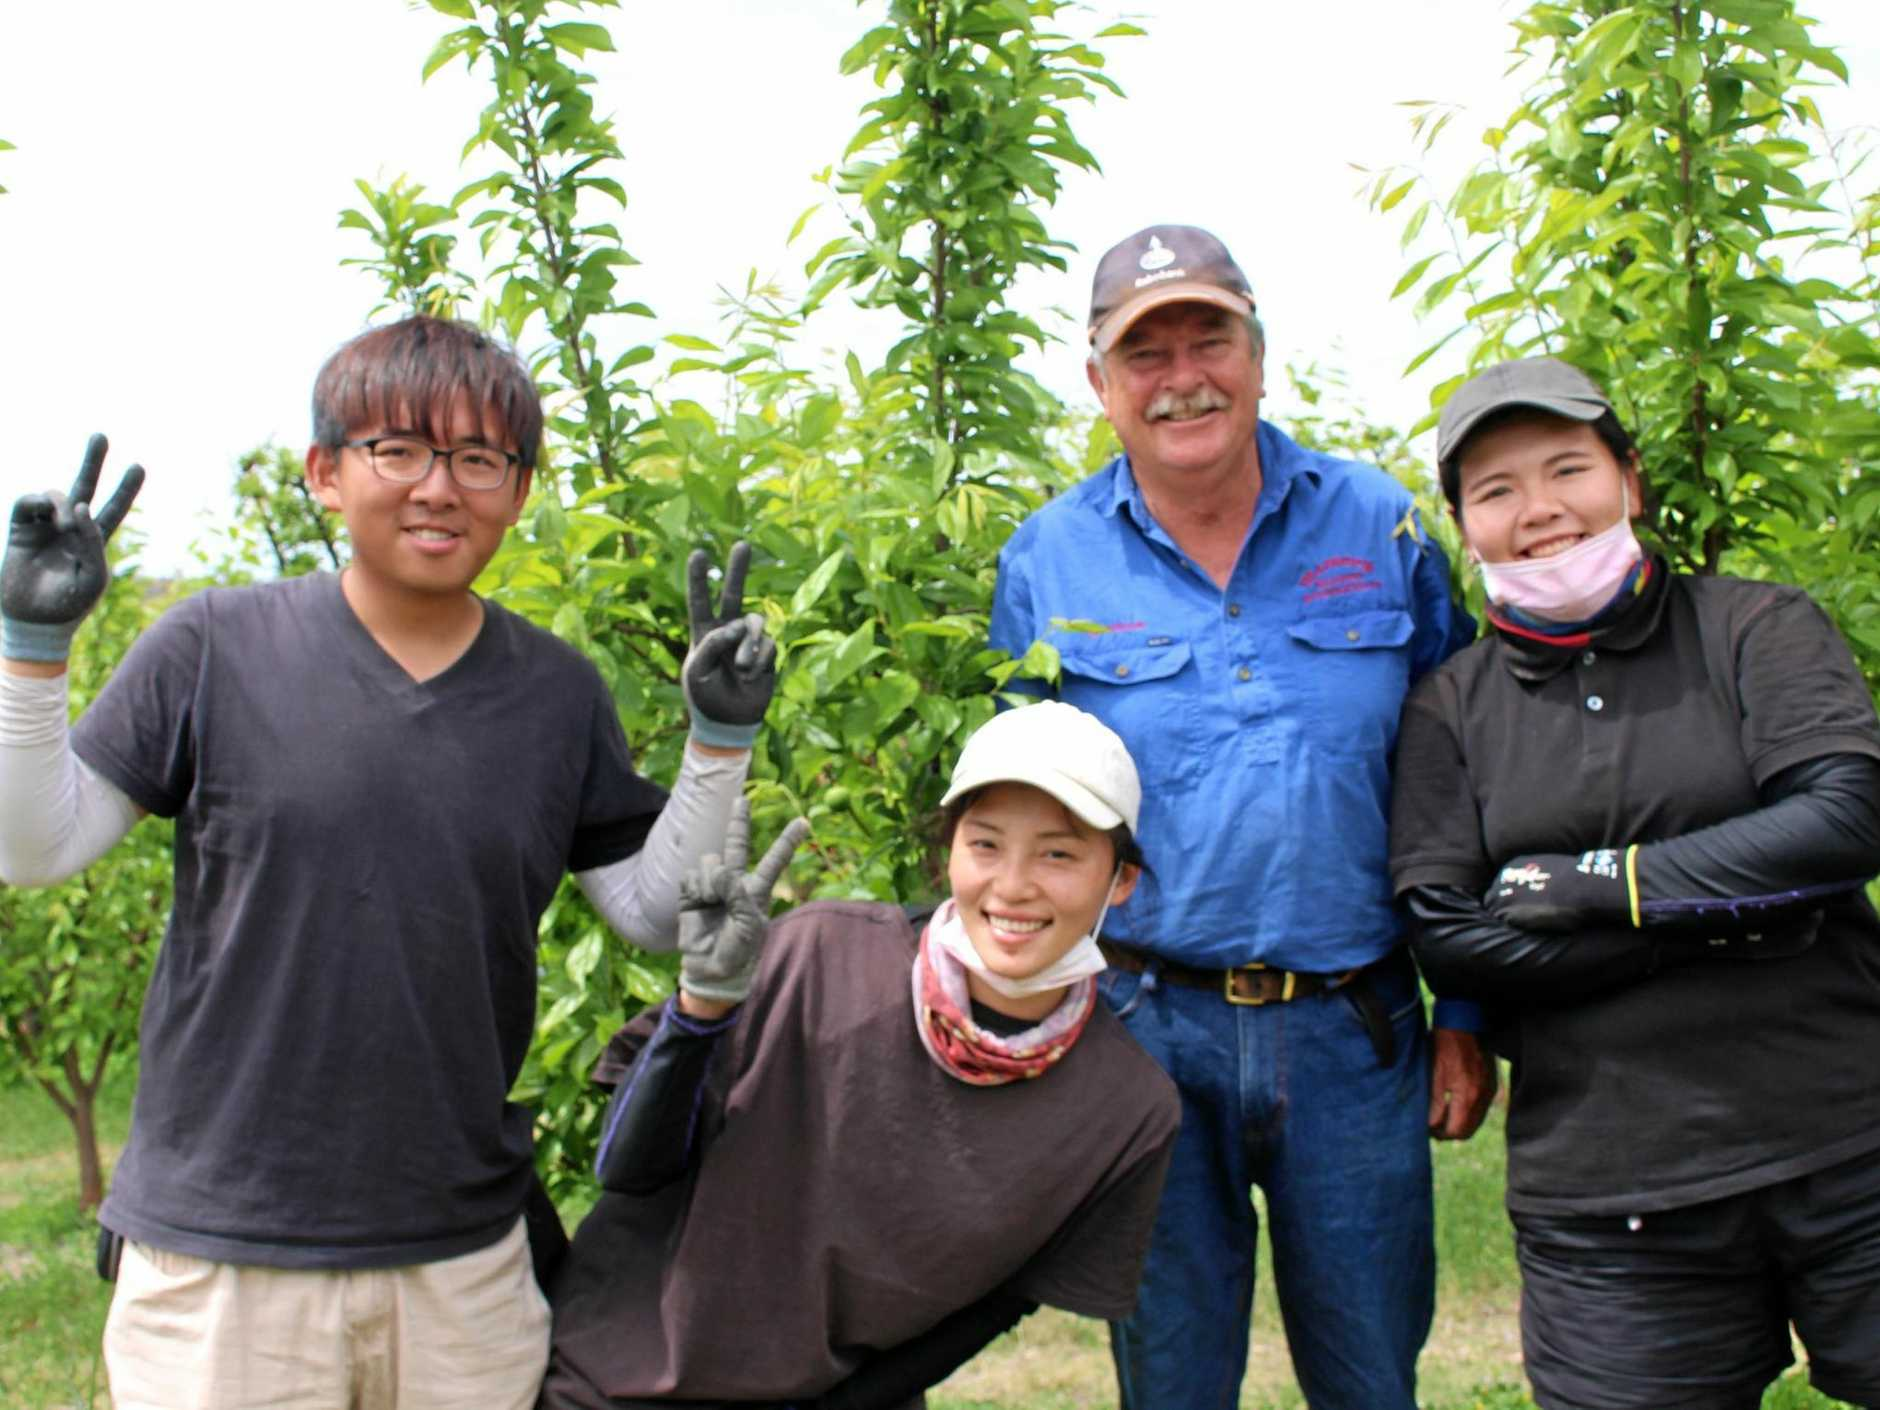 ON FARM: Second-time backpackers Wonka Yen, Paphy Po and Kim Yung with farmer Graham Finlay.